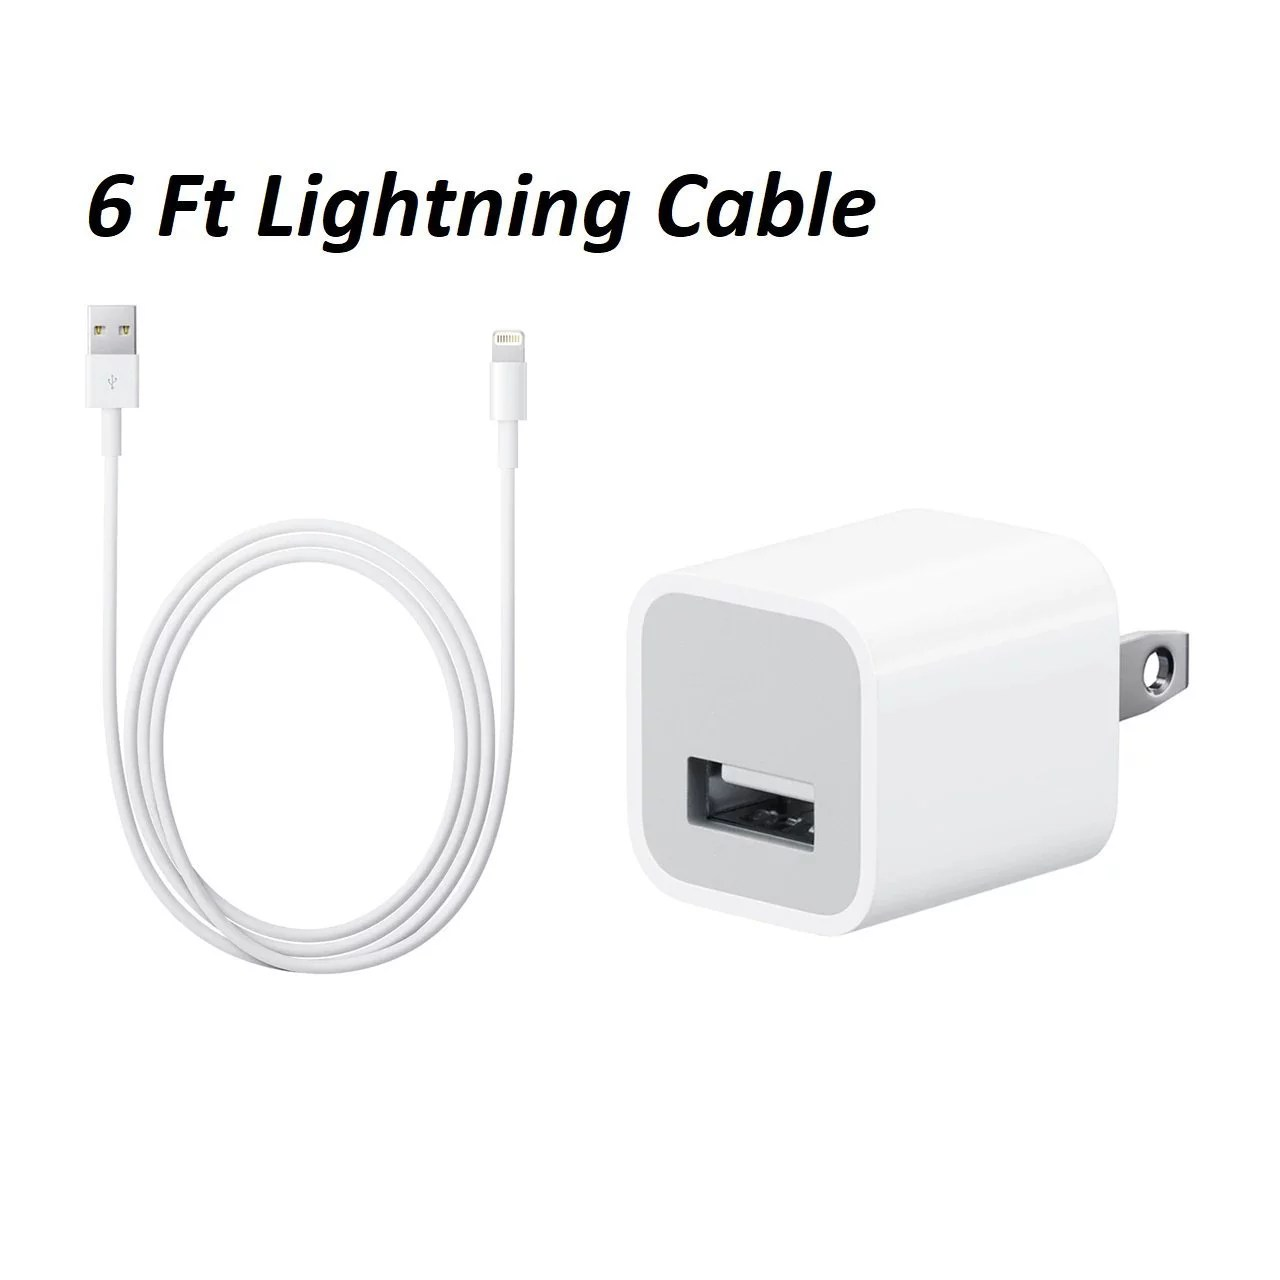 apple iphone charger 5w cube usb adapter 6 foot 2 meter lightning usb cable for ipod ipad iphone 5 5c 5s se 6 6s 7 plus 8 8 plus x walmart com